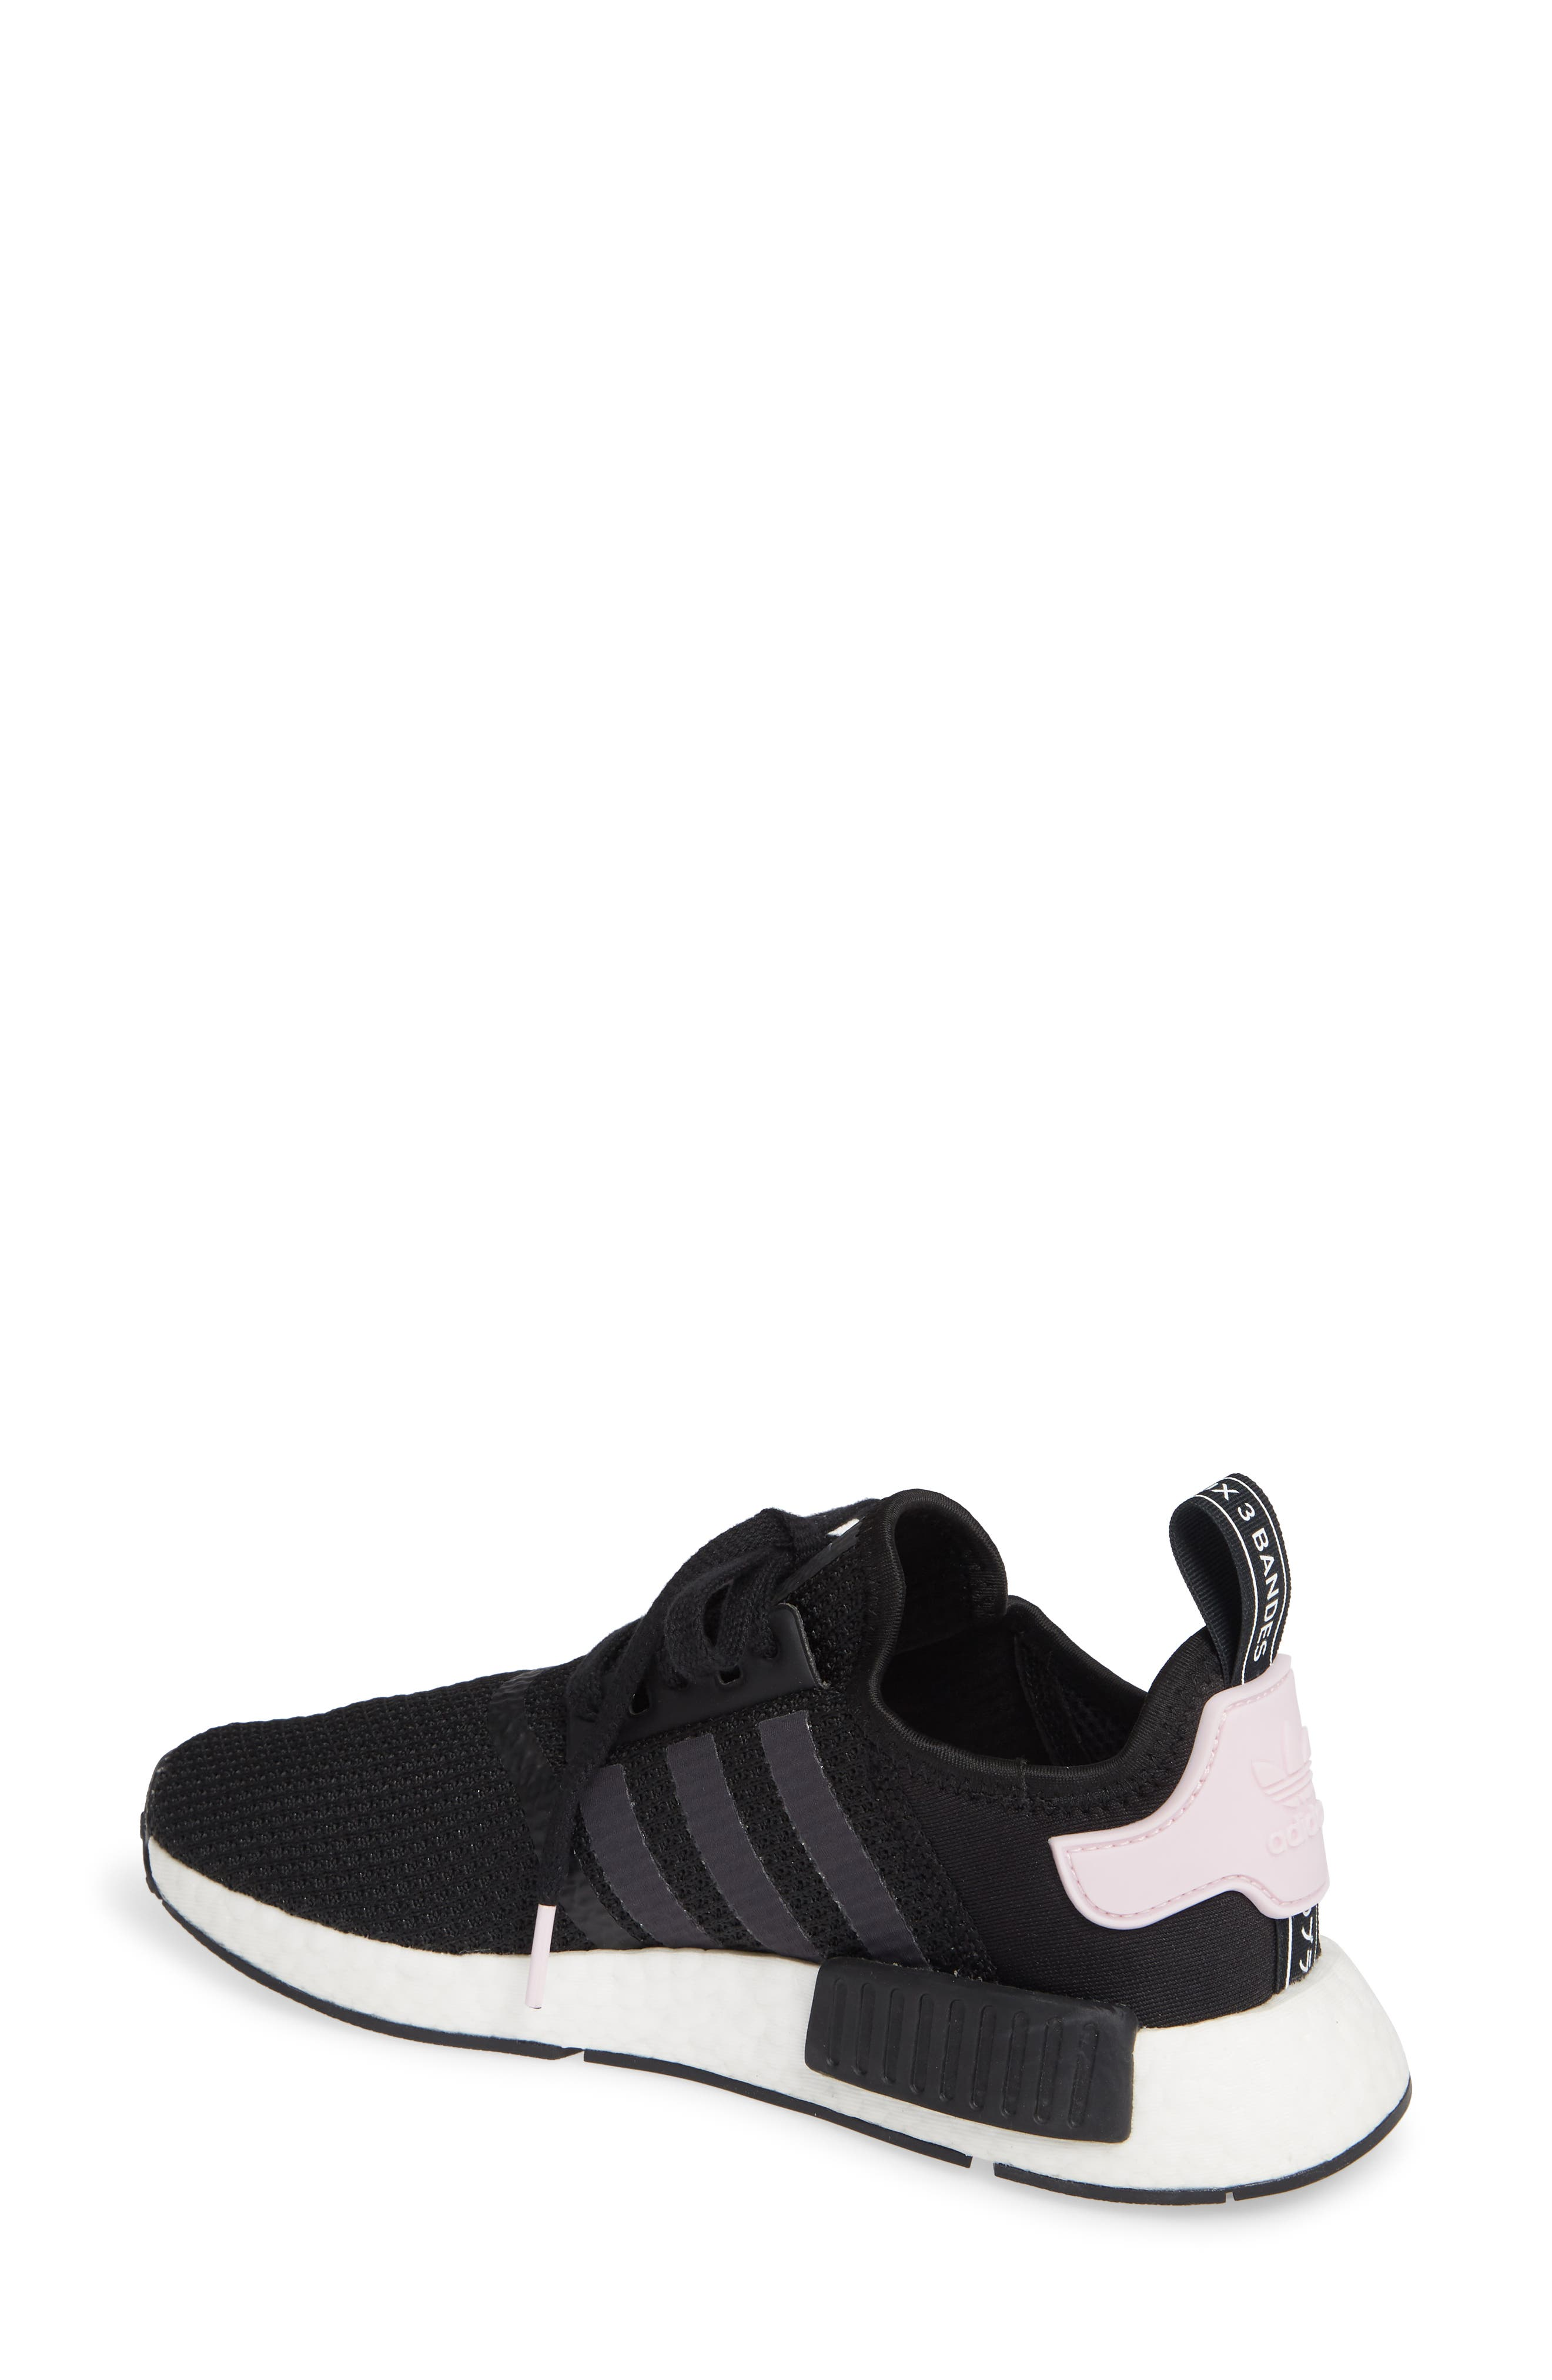 sports shoes ccc9c d2caa adidas nmd | Nordstrom